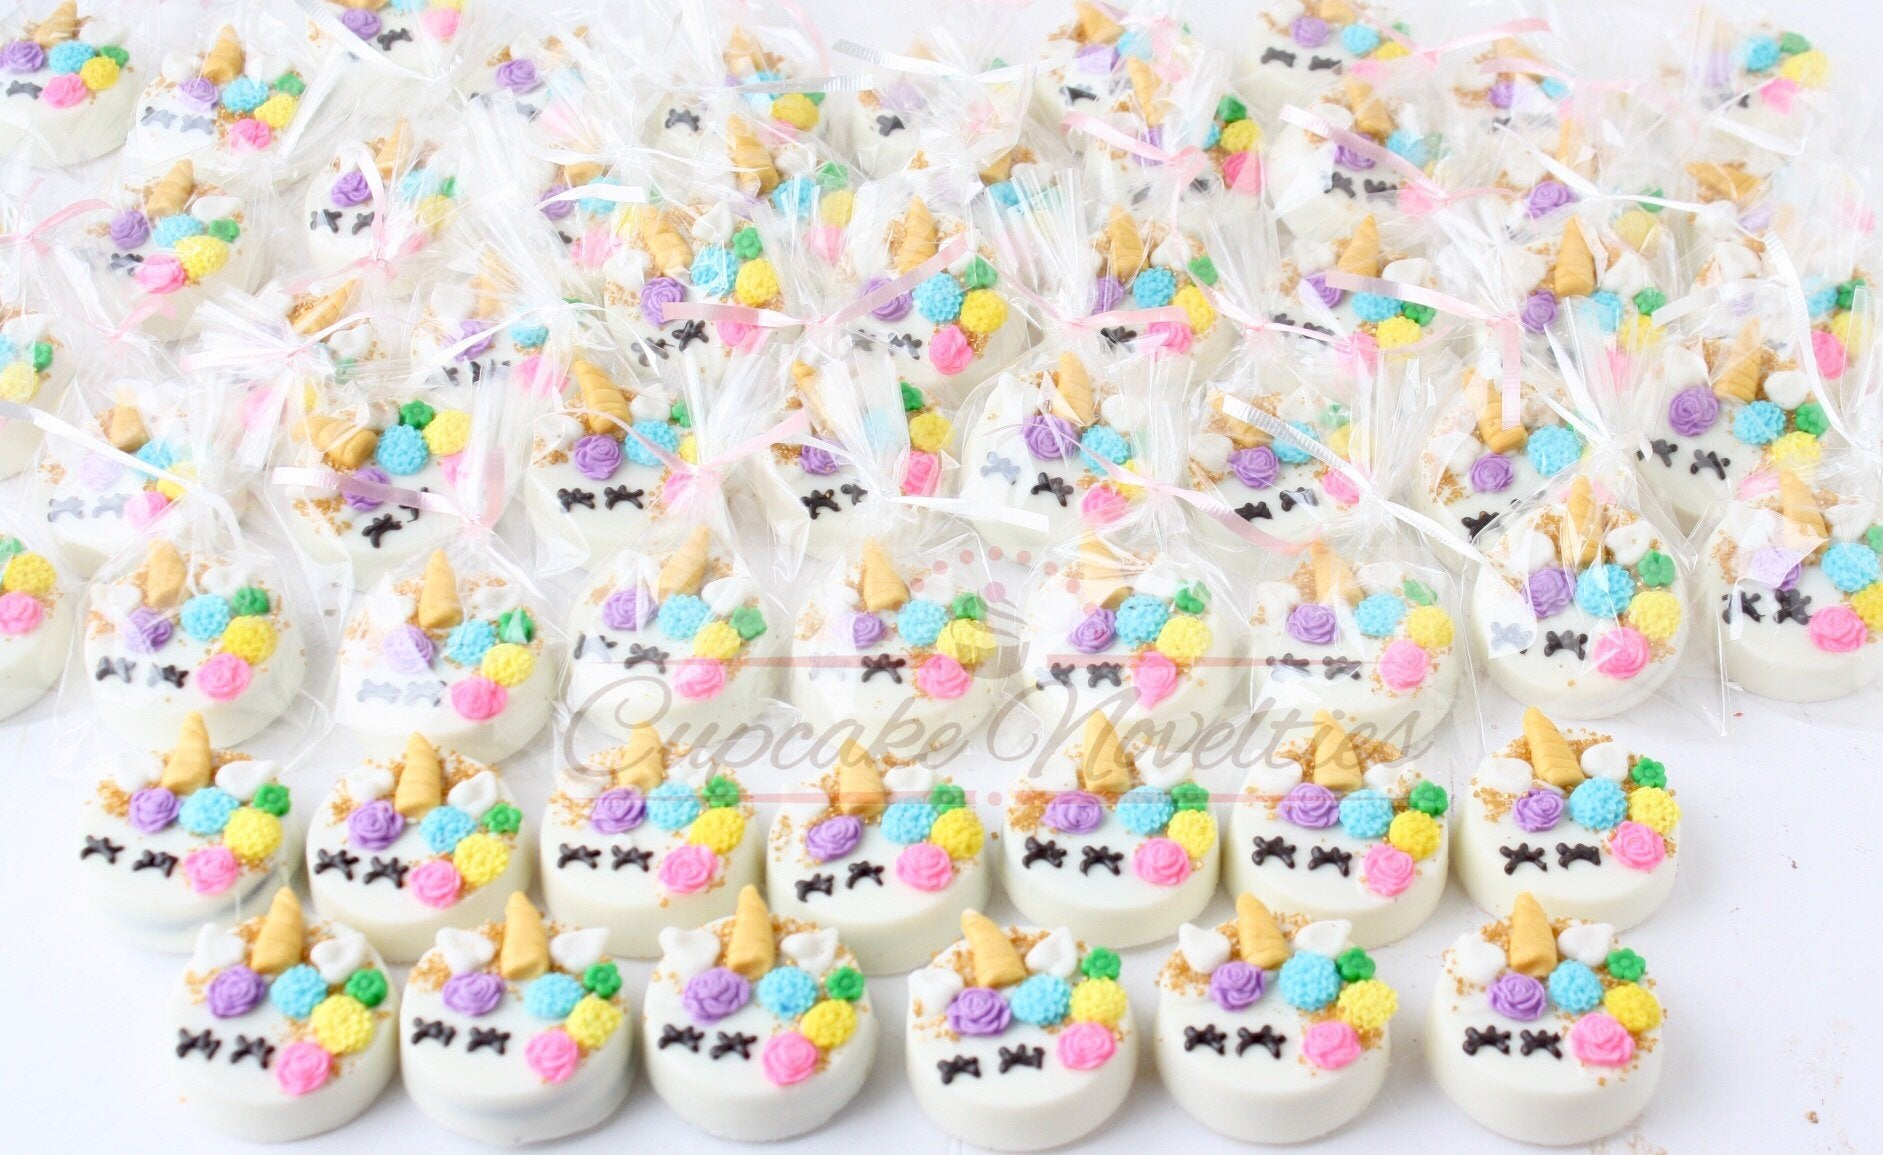 Unicorn Party Unicorn Birthday Unicorn Baby Shower Favors Unicorn Cookies Rainbow Unicorn Party Gold Rainbow Birthday Gold Unicorn Birthday